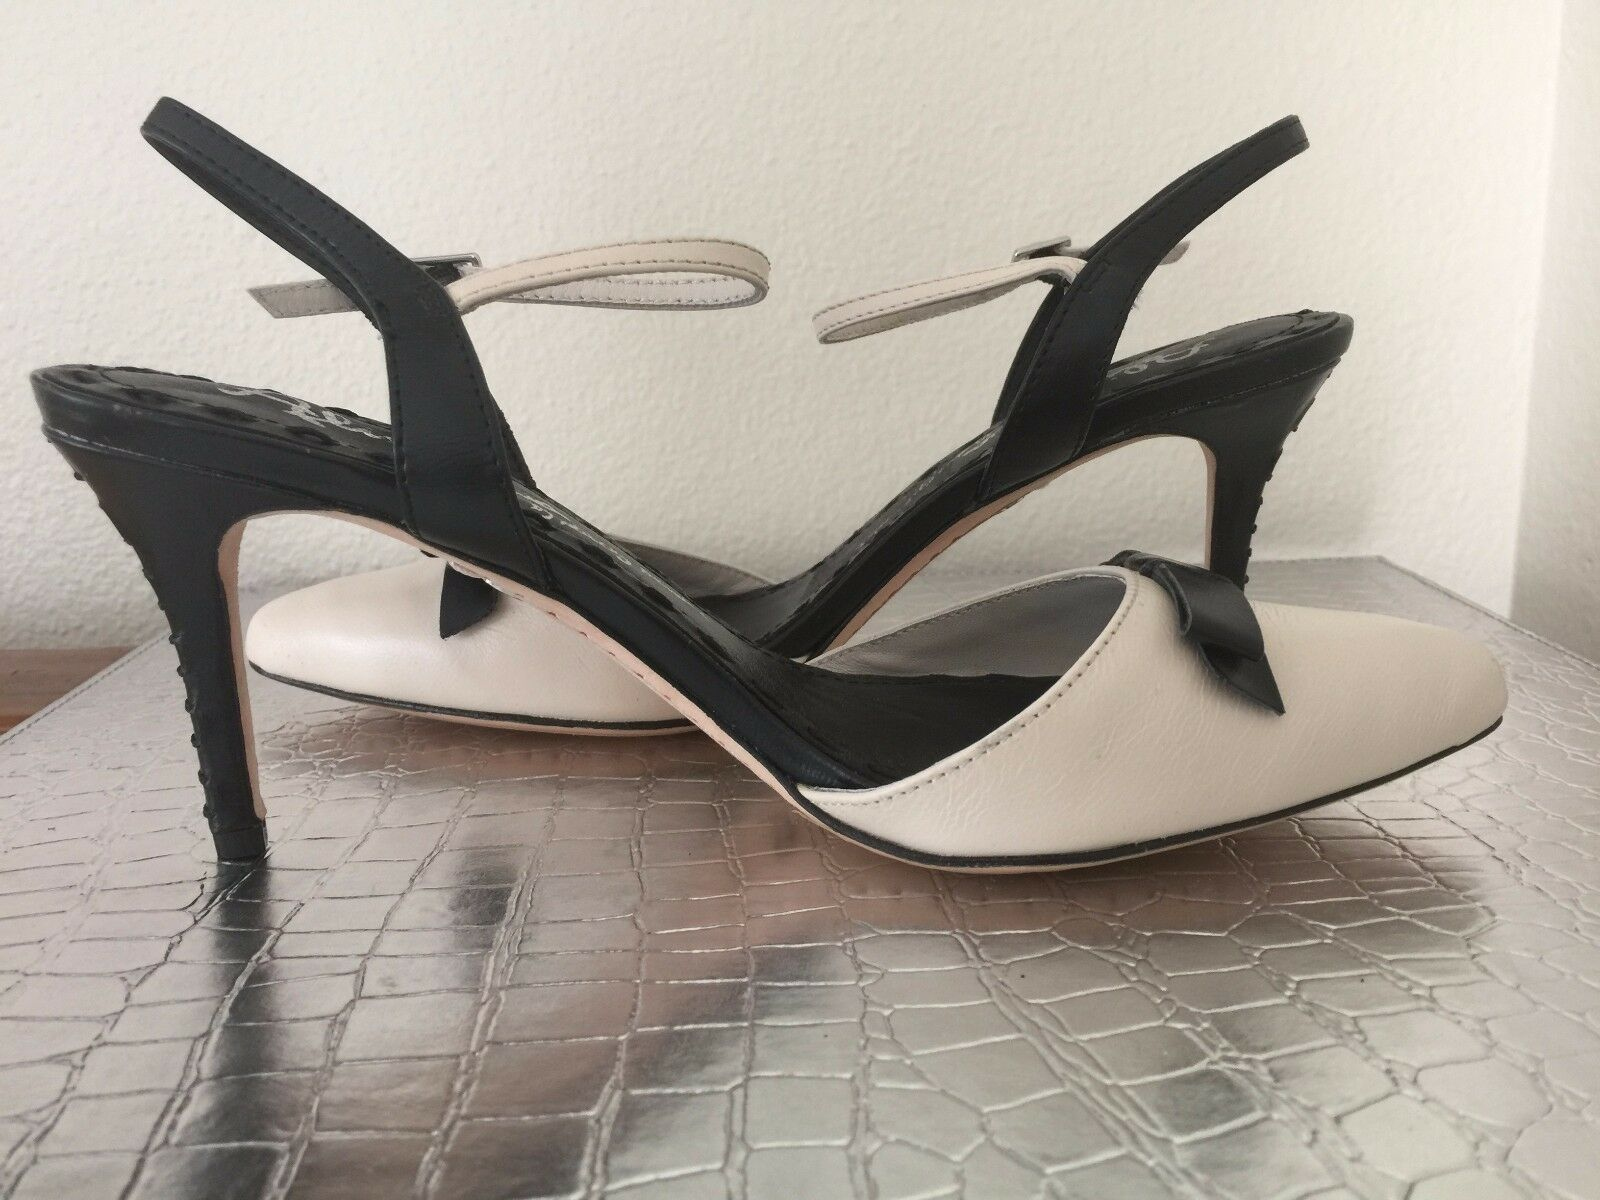 NEW ALICE + OLIVIA  Sz38.5 LEATHER ANKLE STRAP SHOES BEIGE BLACK